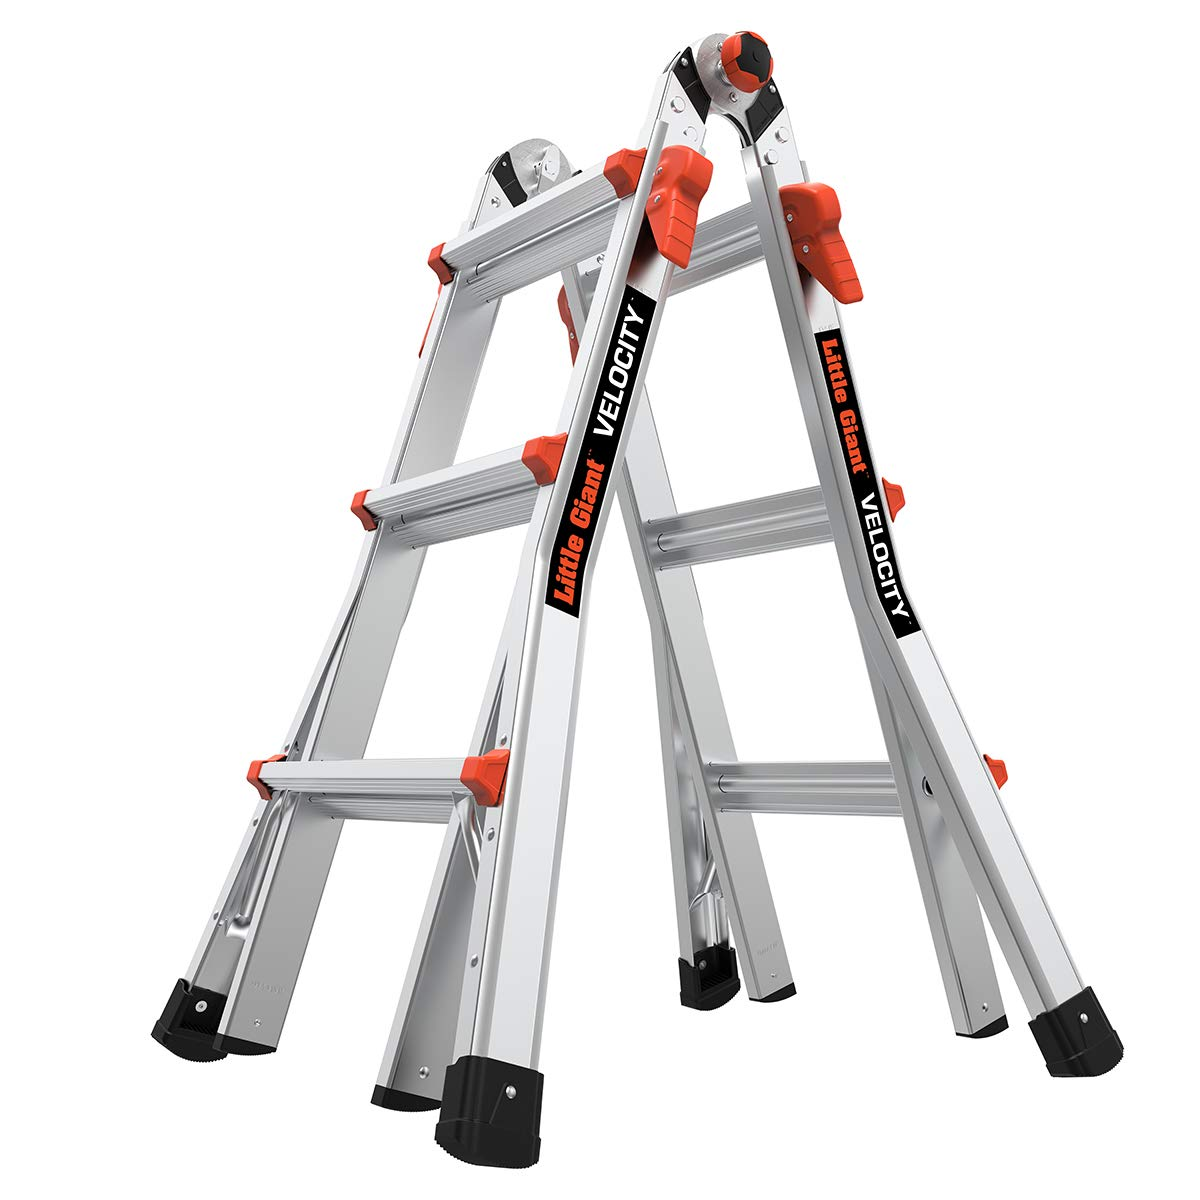 Amazon Com Little Giant Ladders Velocity With Wheels M13 13 Ft Multi Position Ladder Aluminum Type 1a 300 Lbs Weight Rating 15413 001 Home Improvement